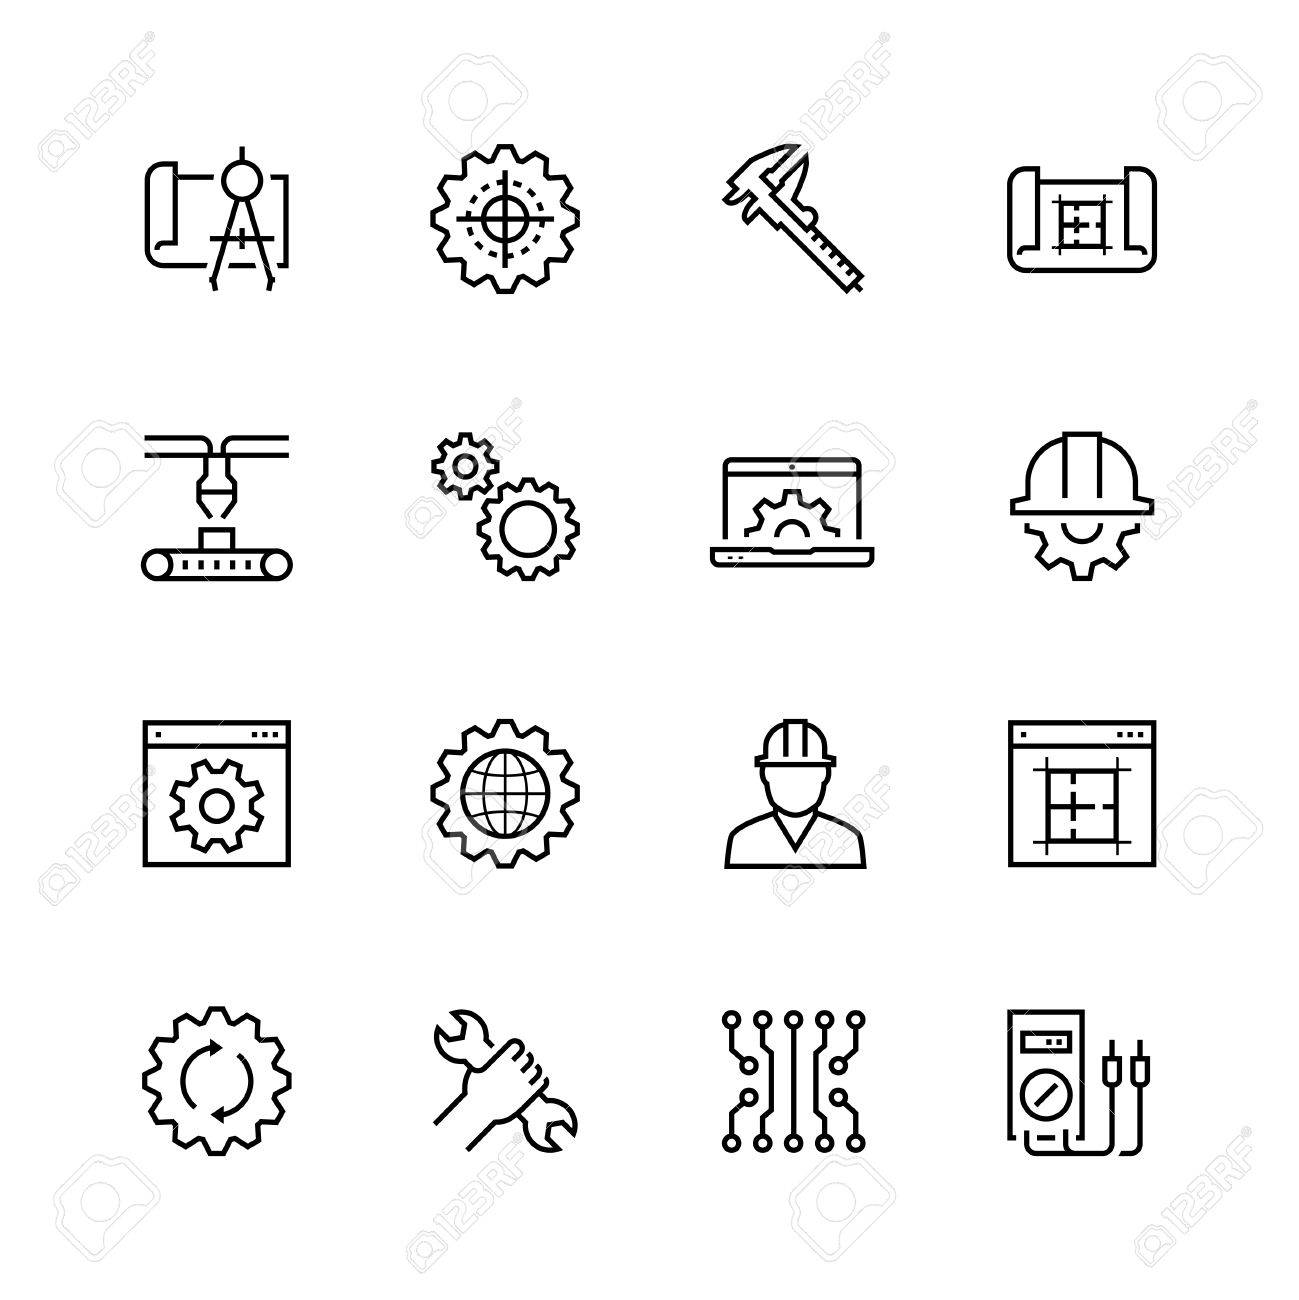 Engineering and manufacturing vector icon set in thin line style - 58521143